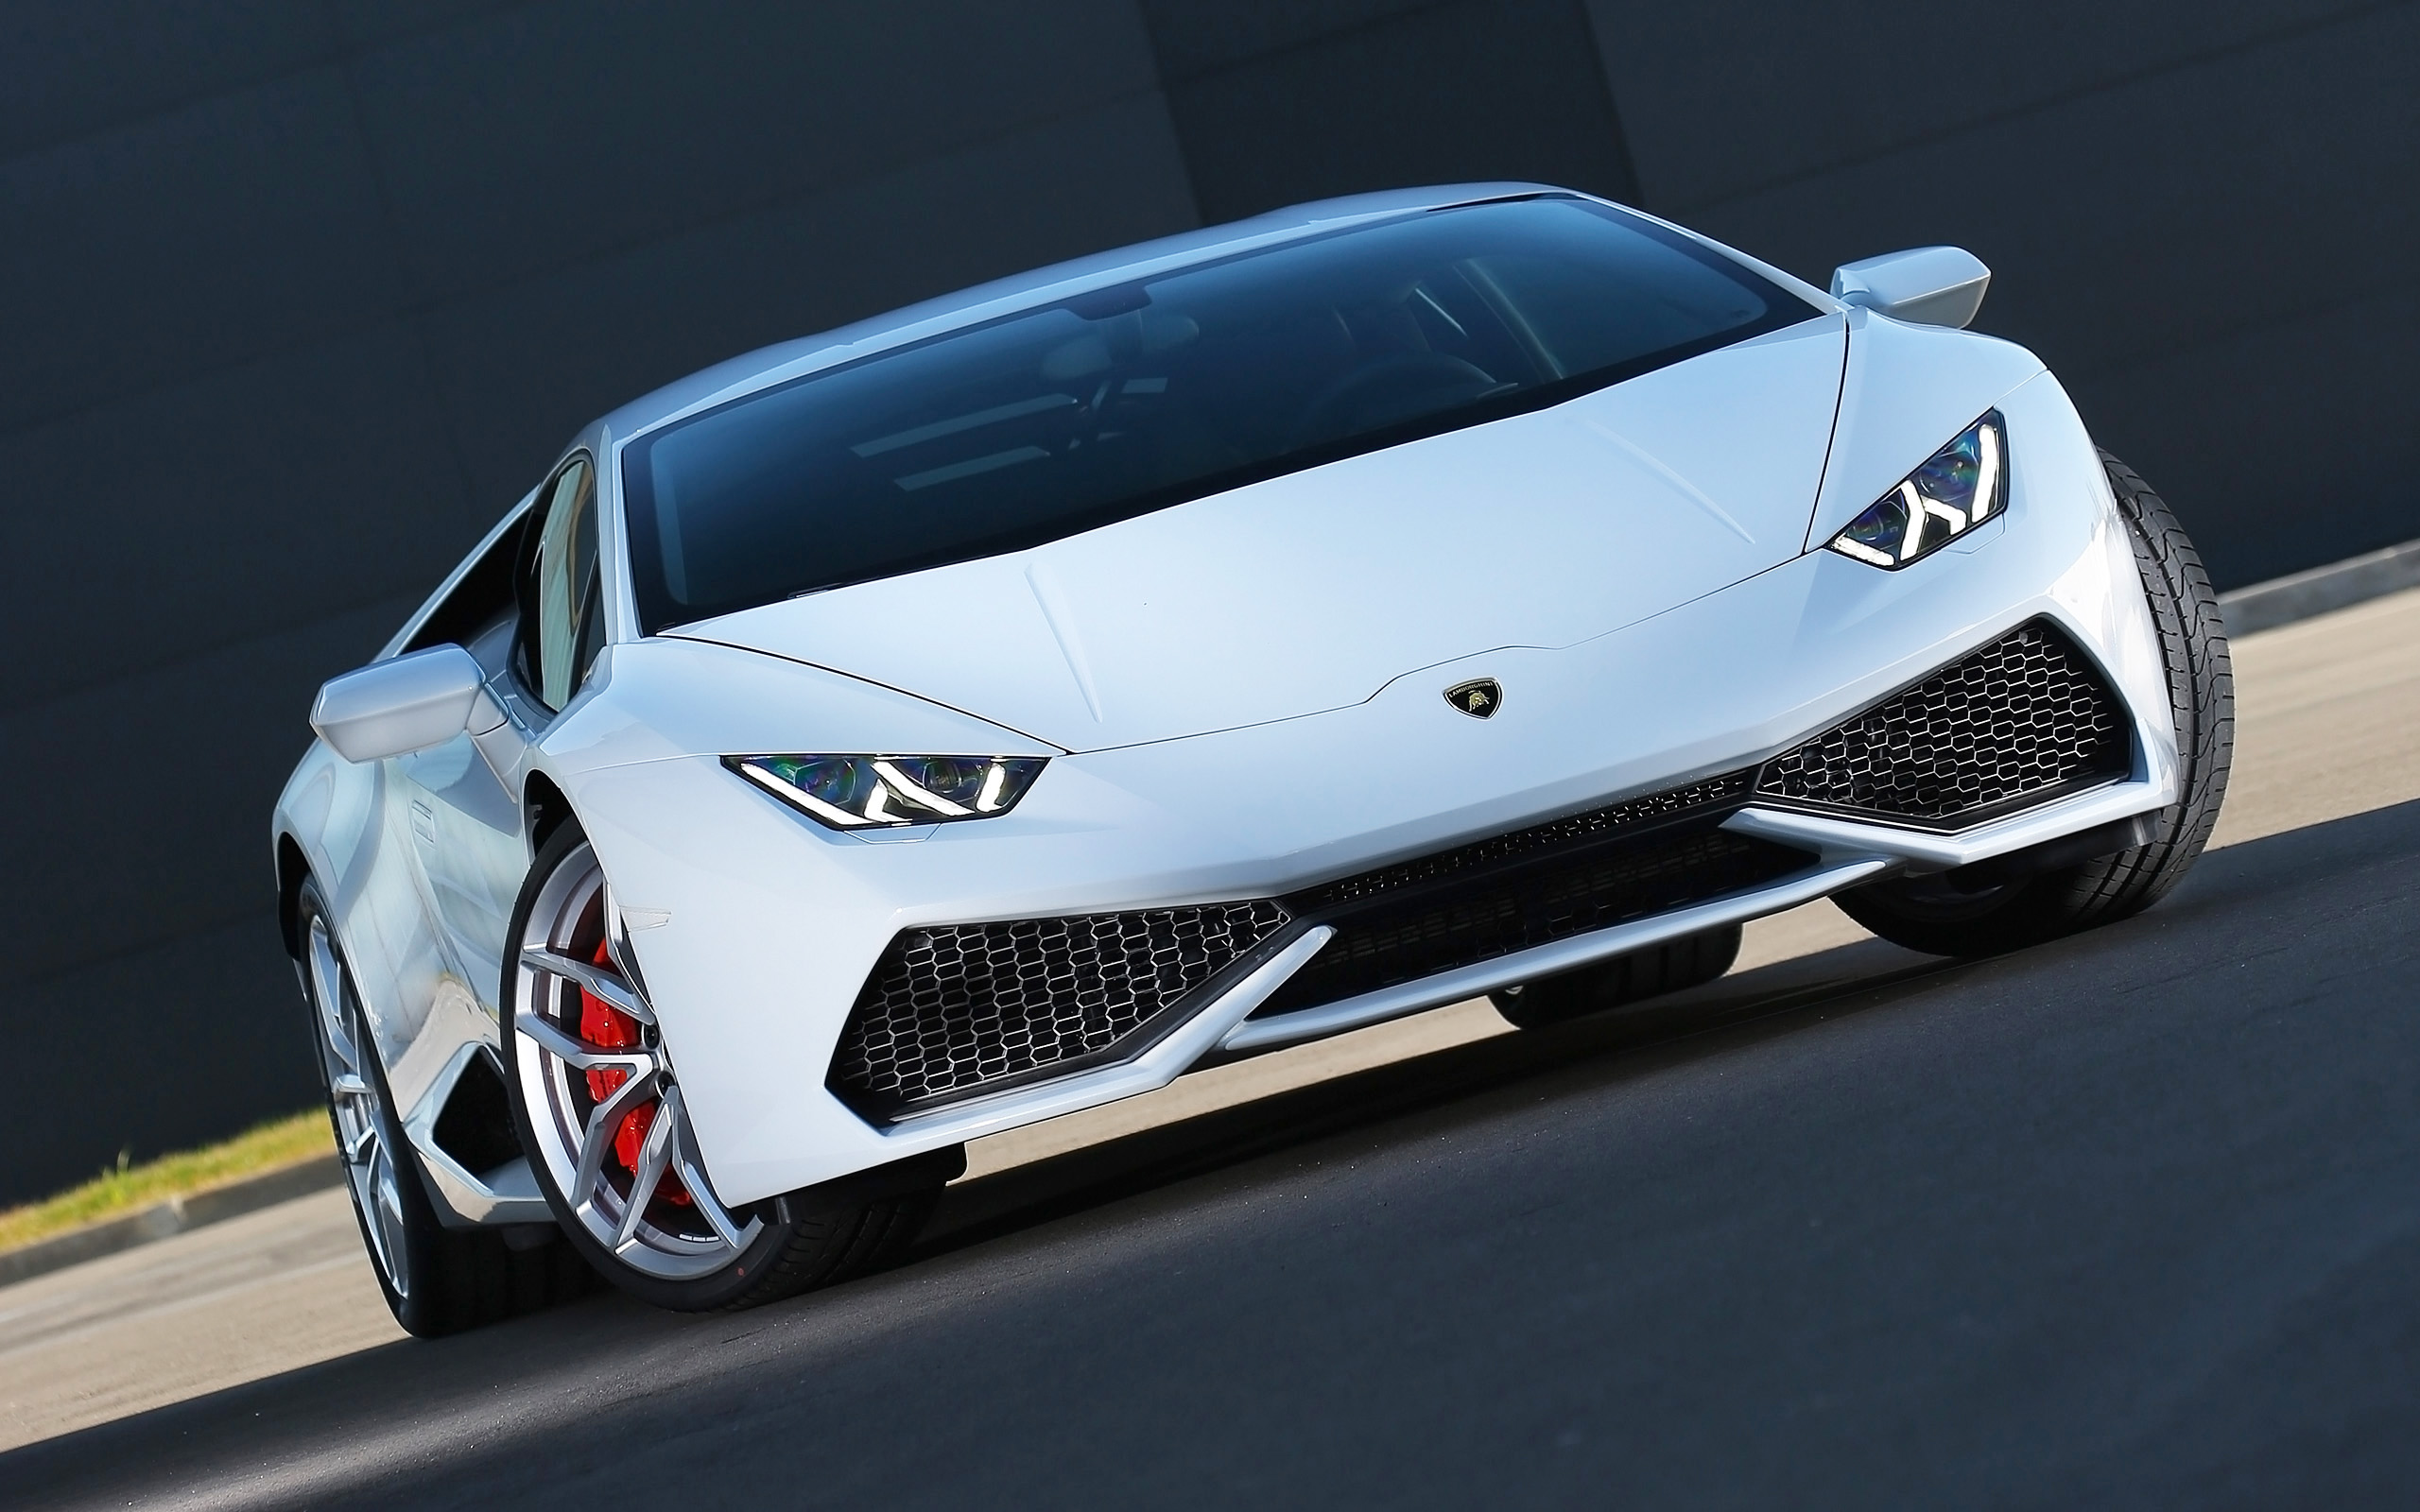 Lamborghini Huracan Hd Wallpapers Backgrounds Pictures to pin on